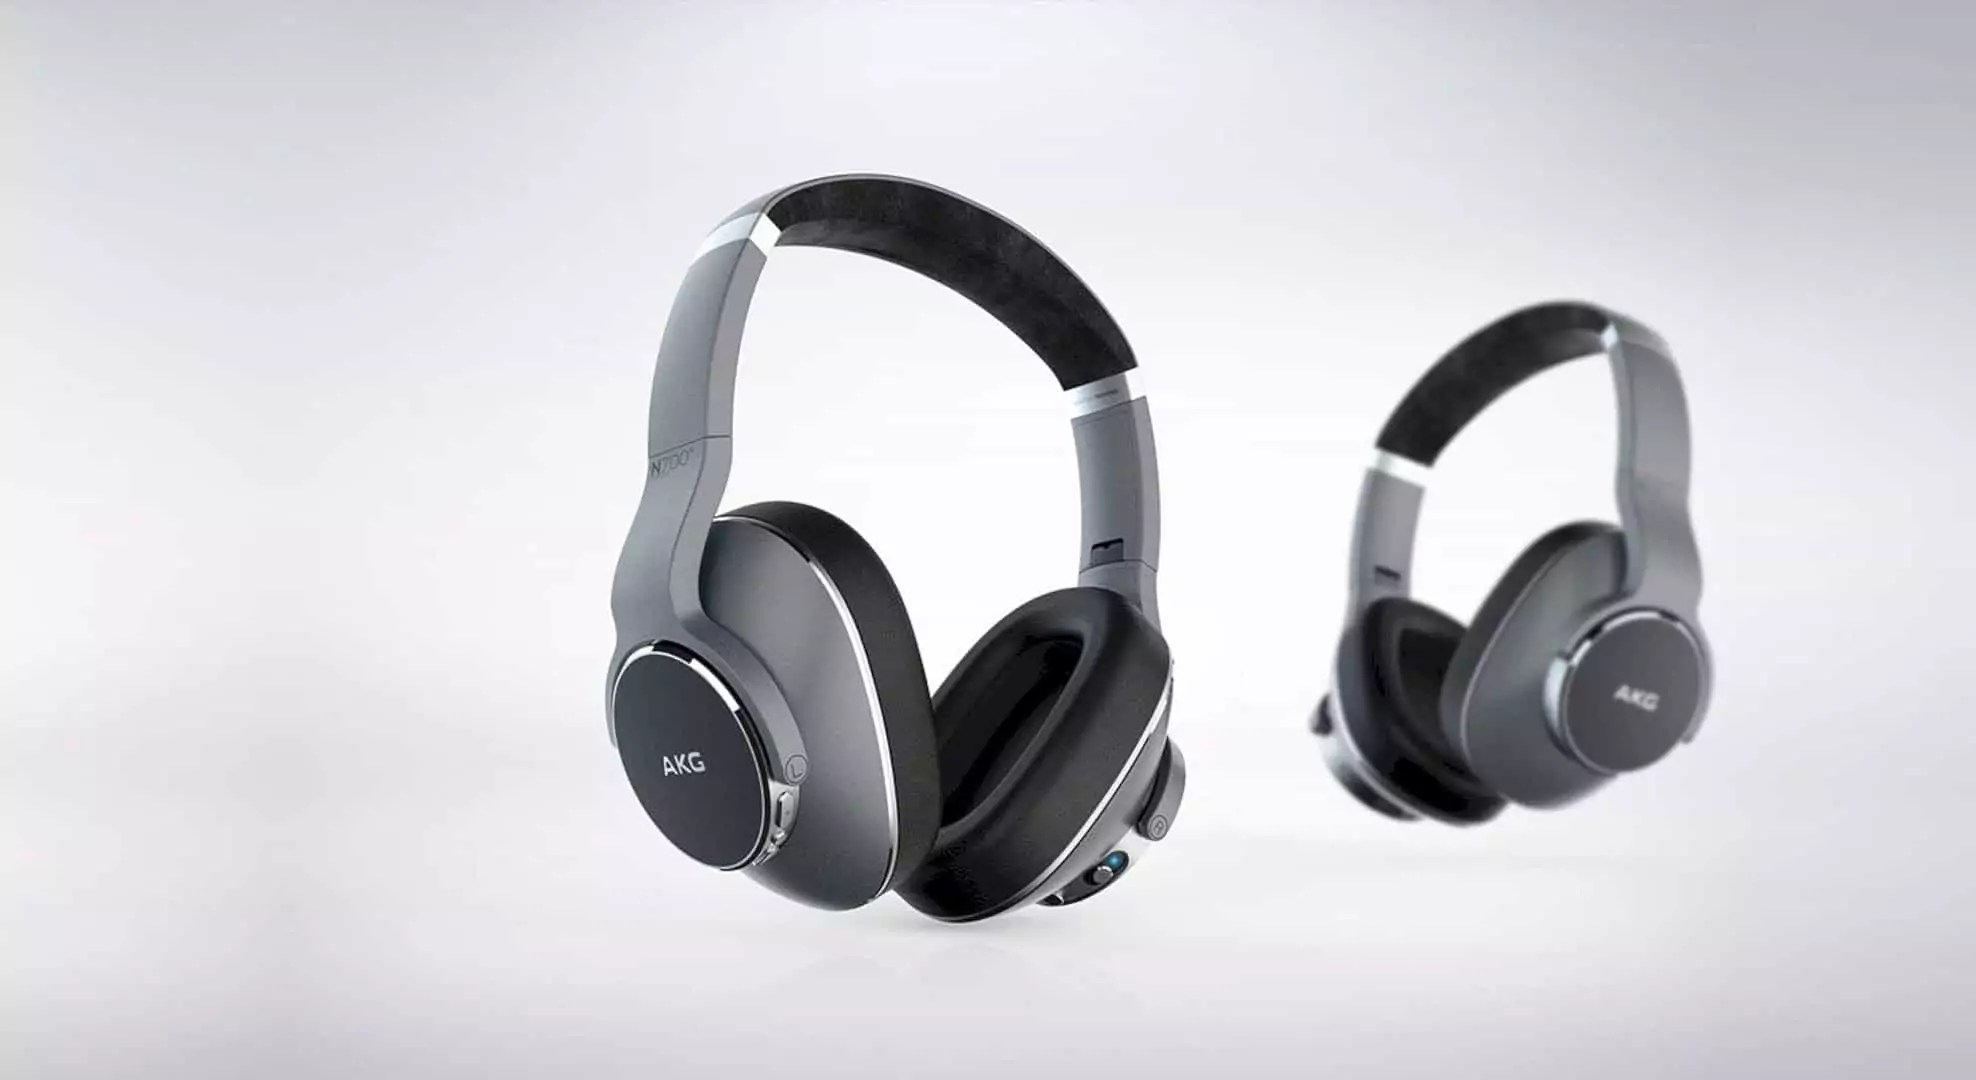 Samsung AKG Wireless Headphones: The Signature Headphone with Dynamic Sound Experience